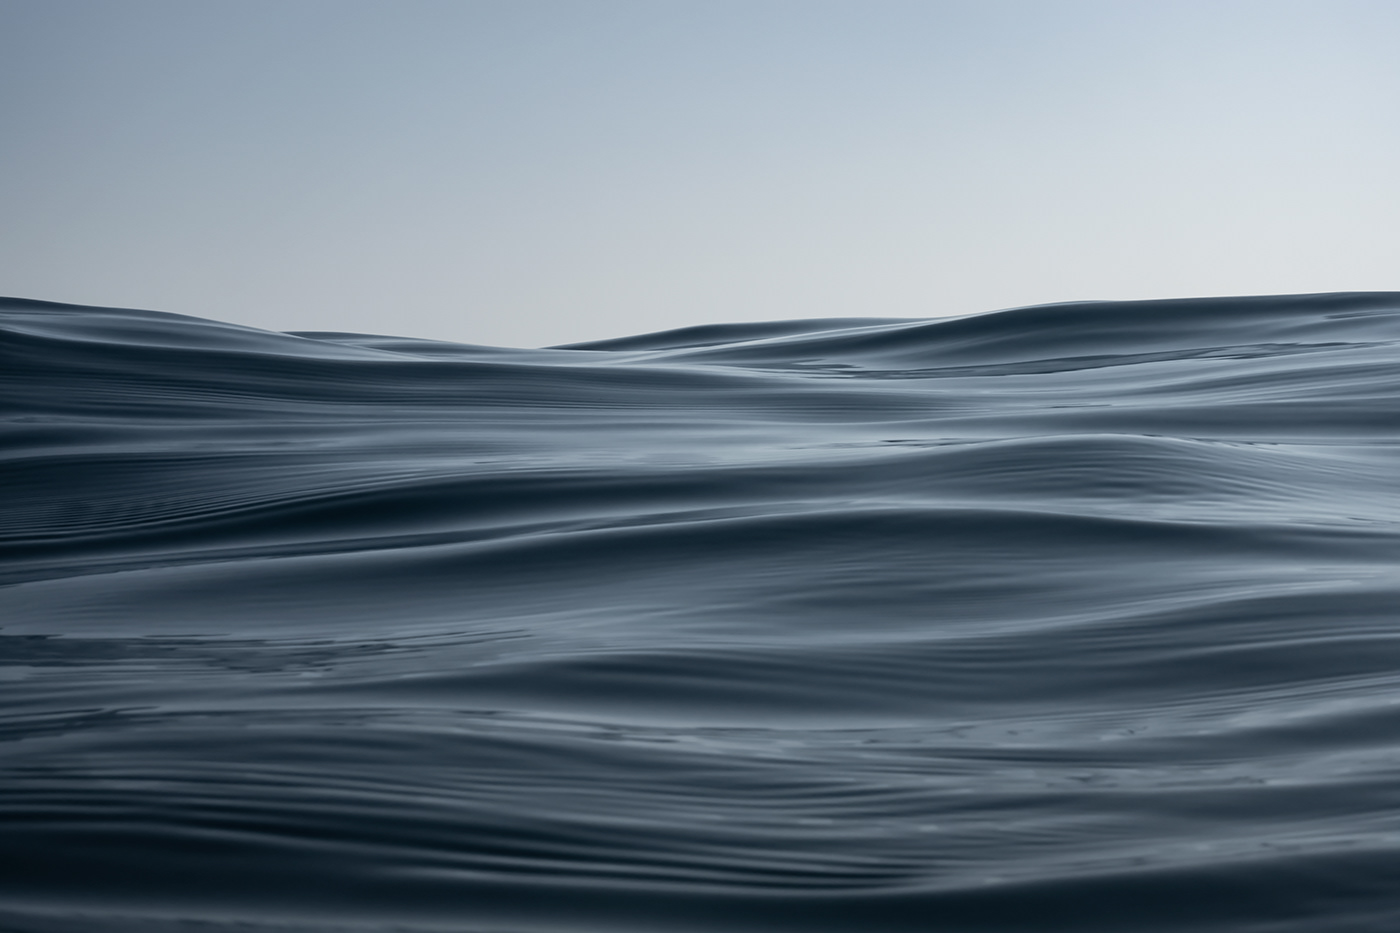 abstract,flows,Gray Whale,neutral grey,sea ​​surface,waves,wavescape,Frozen Motion,Minimalism